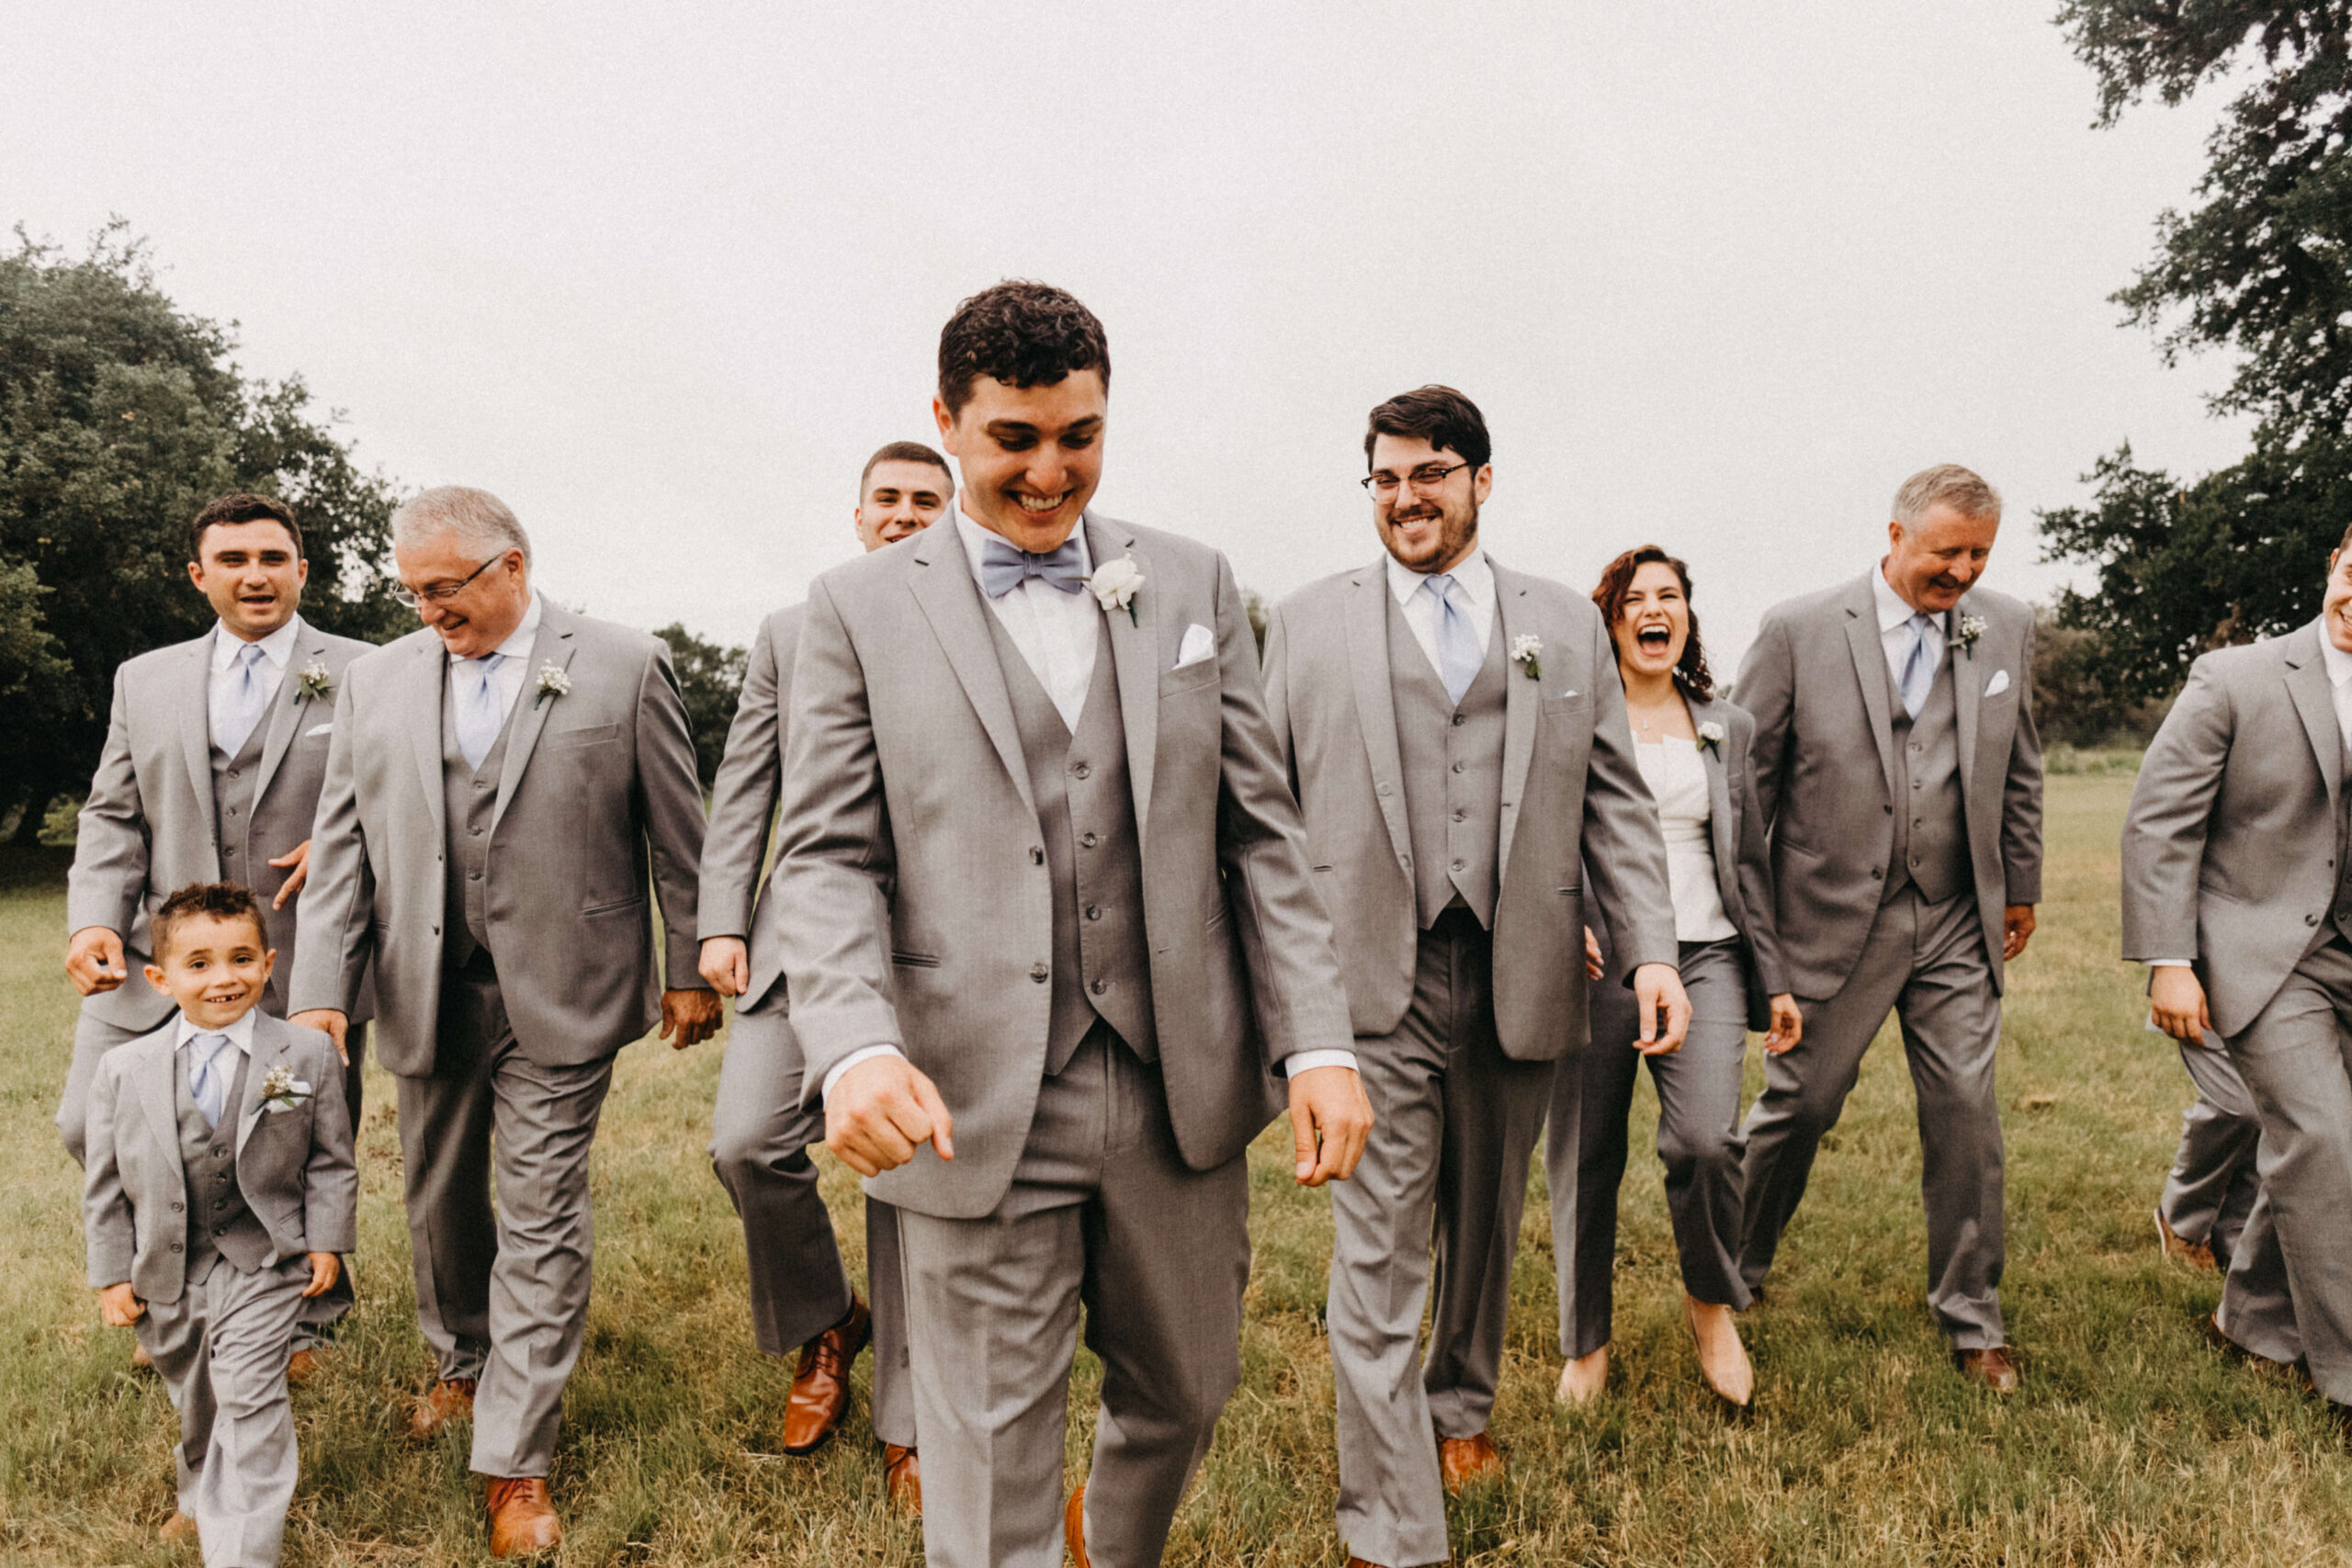 Adams Family's youngest son on his wedding day at Enchanted Springs Ranch